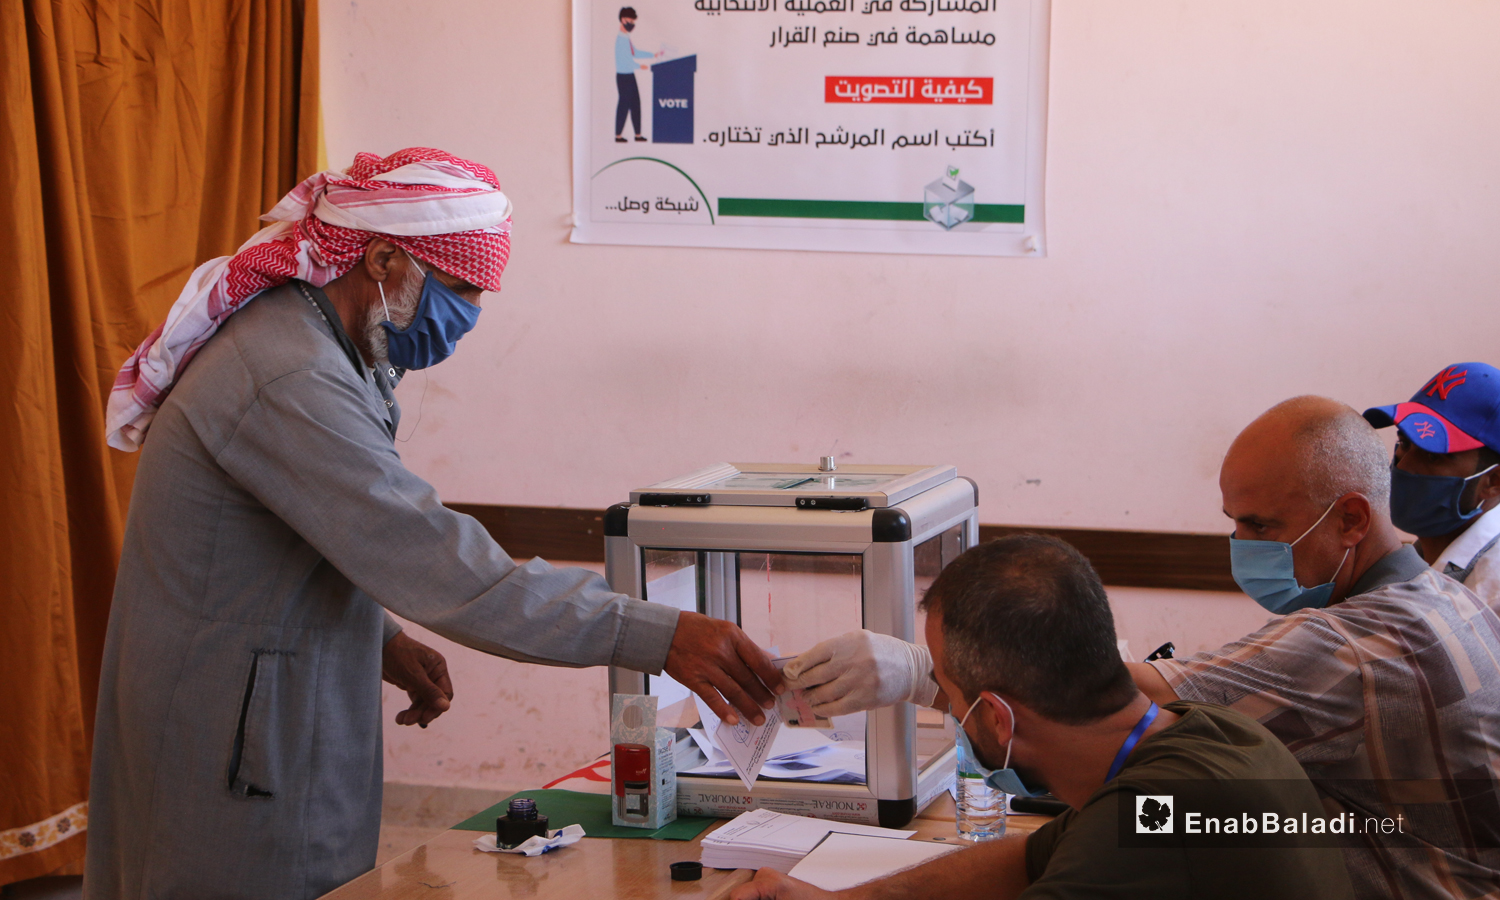 A voter casting a ballot in the Tal Aar Local Council elections - 3 October (Enab Baladi)